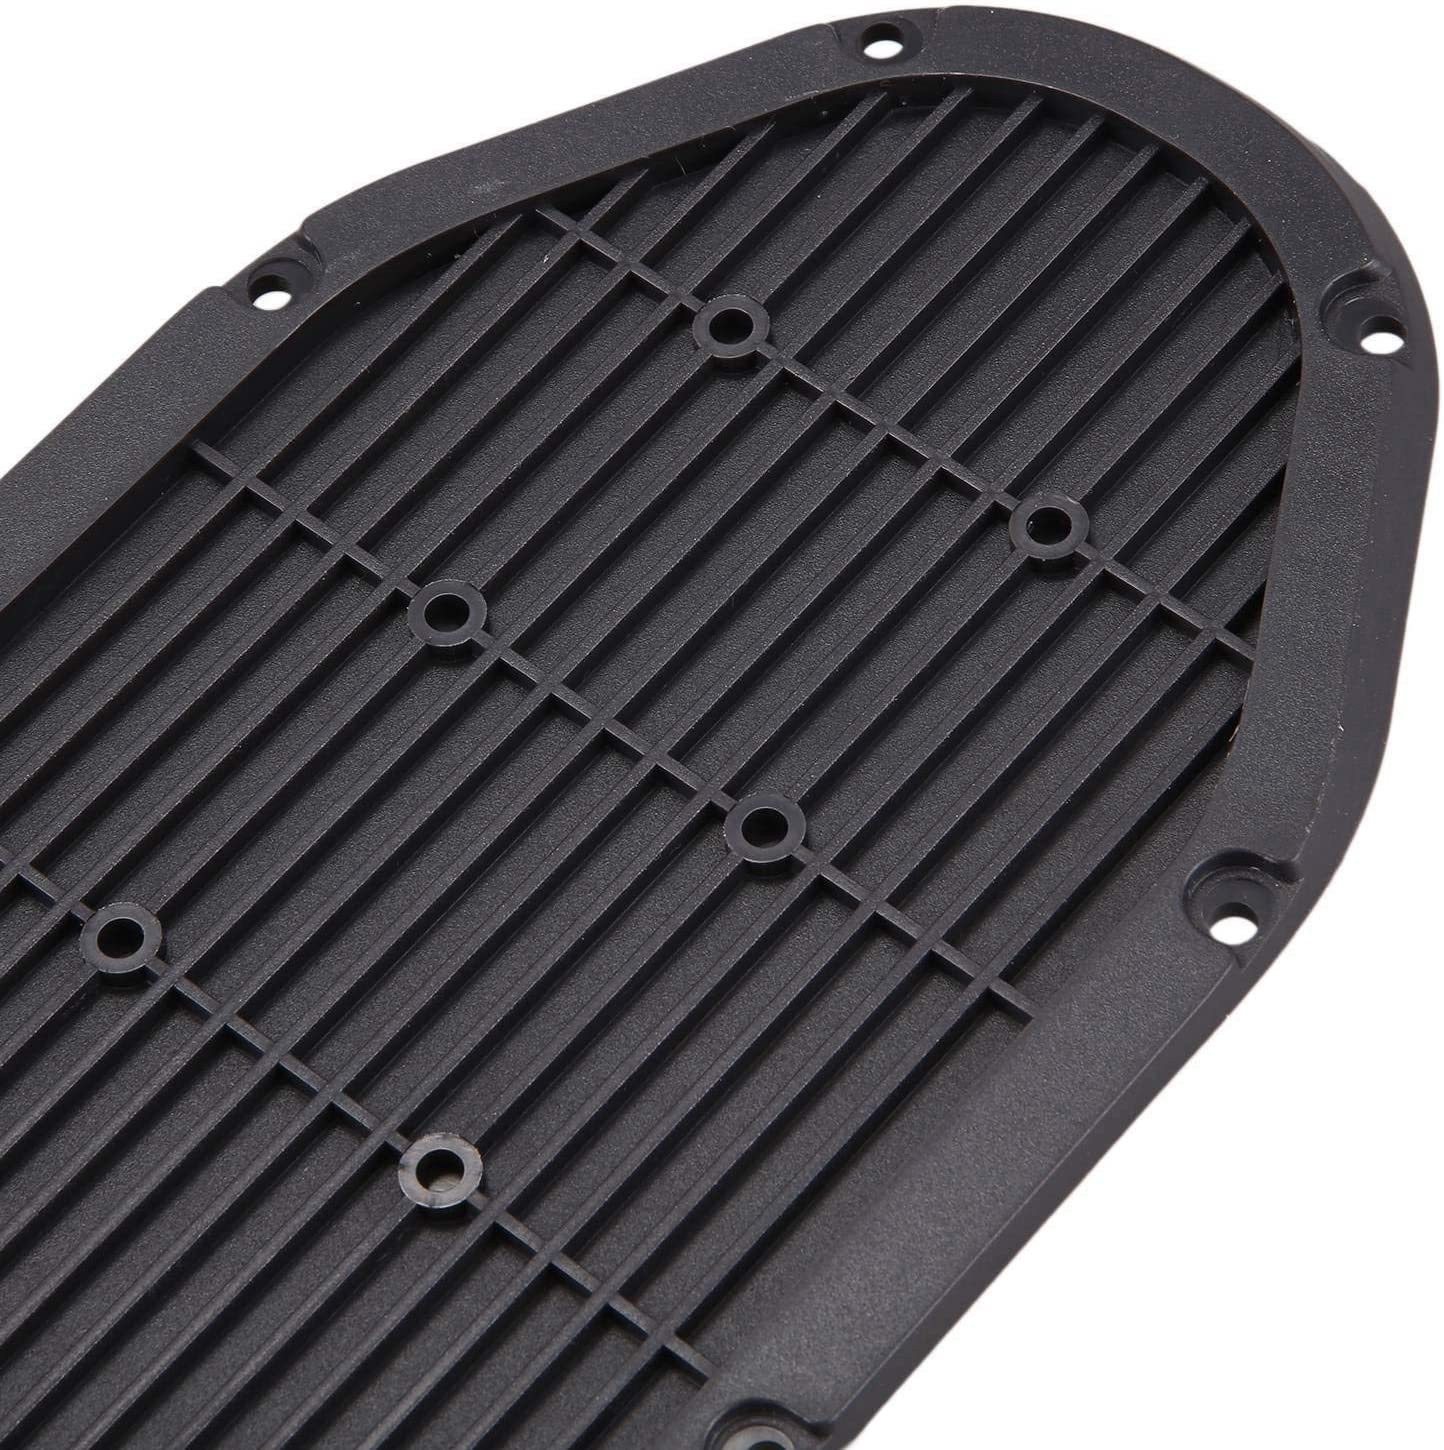 Chassis Armor Protective Cover For Ninebot MAX G30 Electric Scooter Skateboard